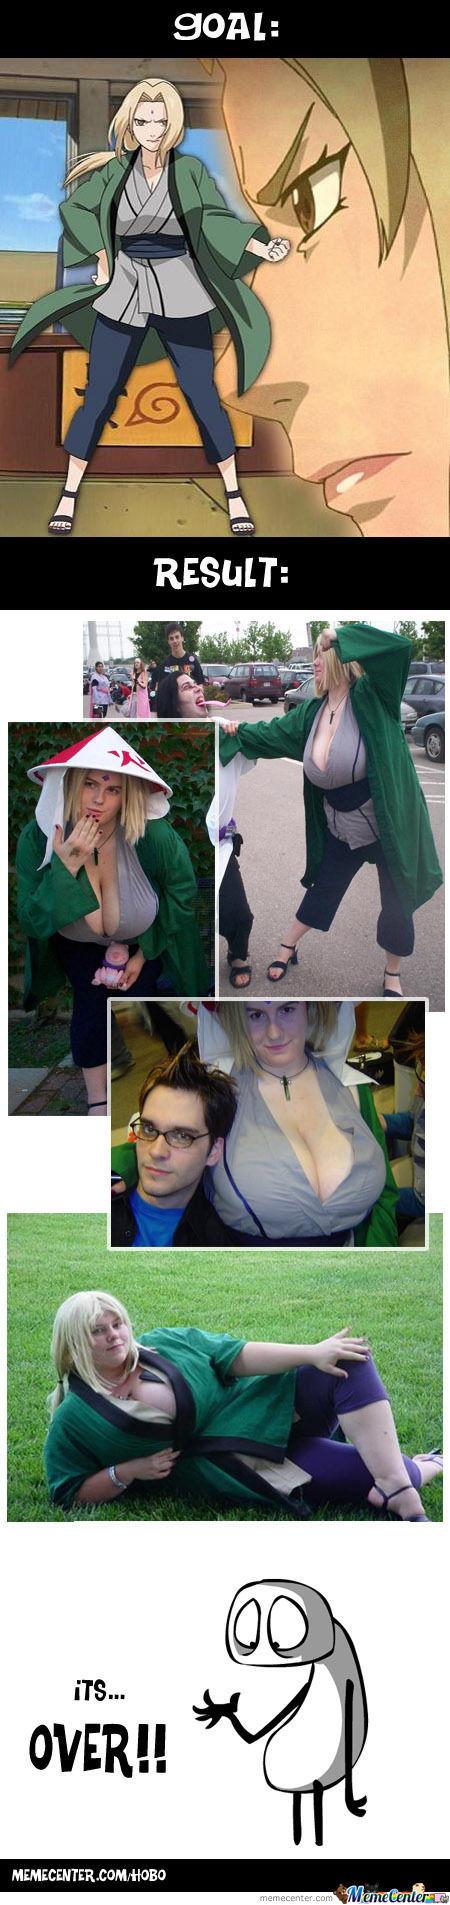 Cosplay Lvl: Please Not This One!